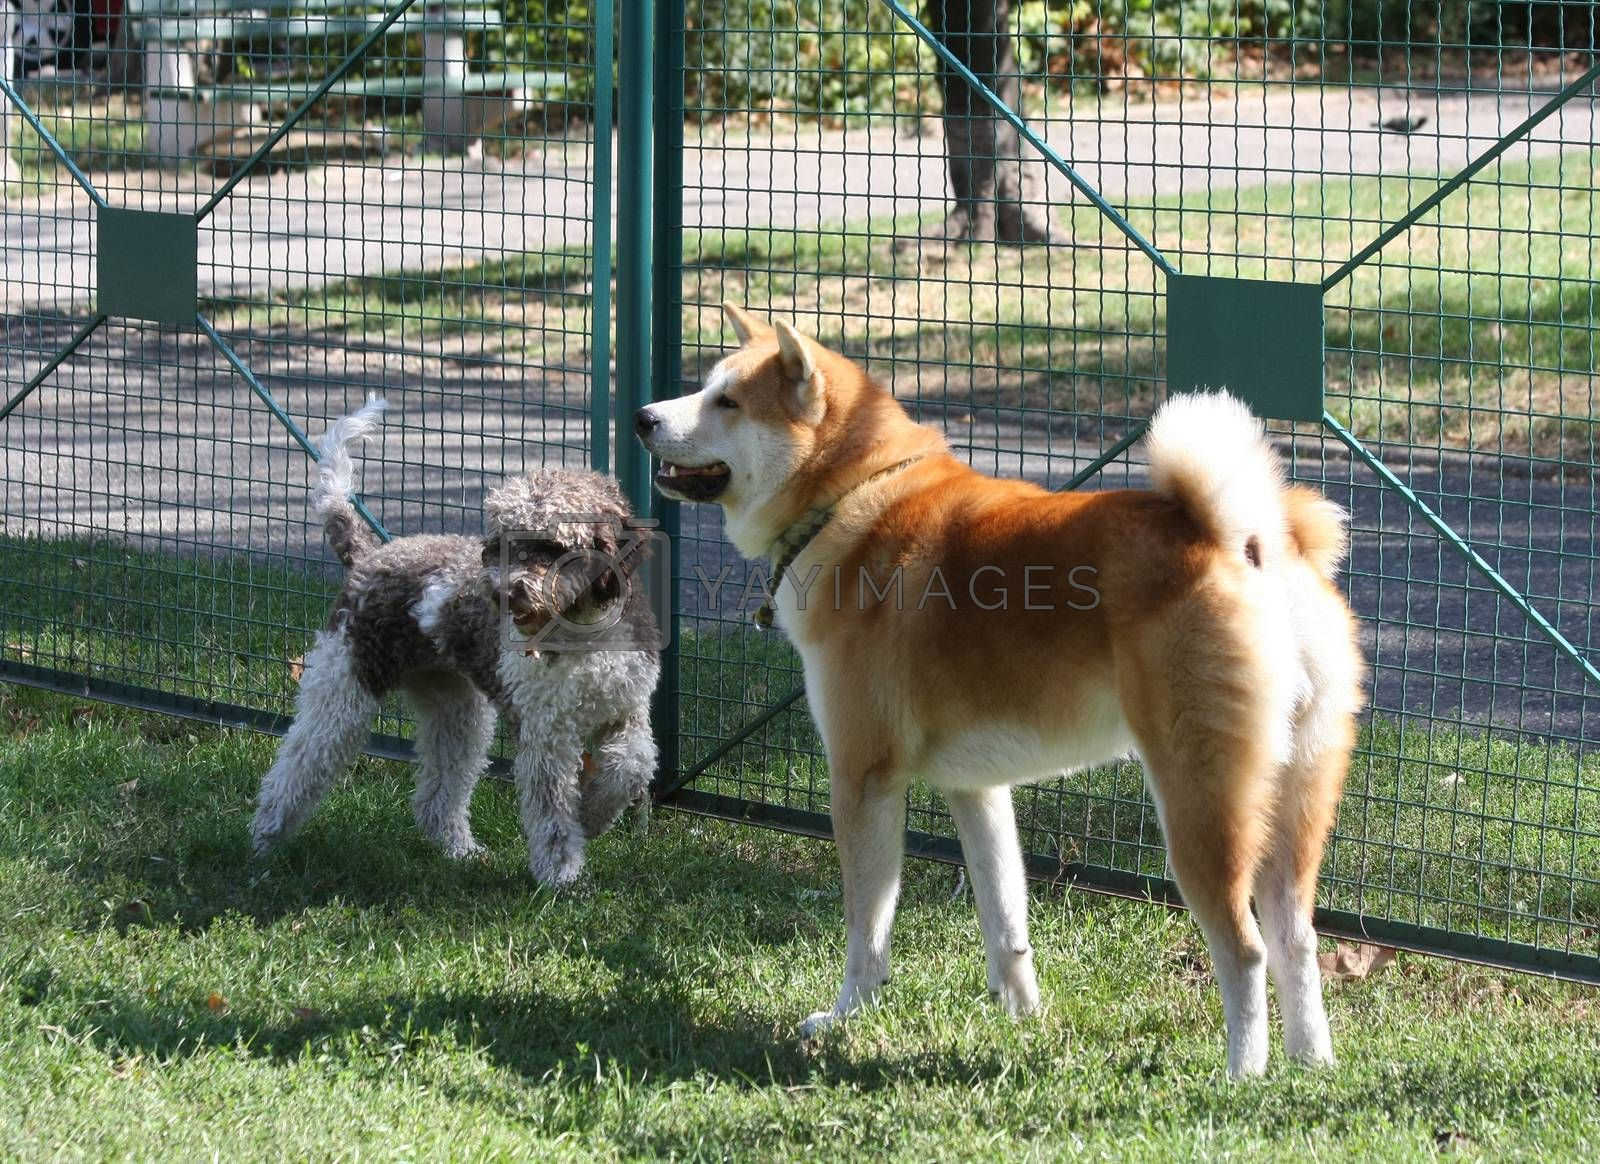 Lagotto Romagnolo and Akita Inu playing  in dog park